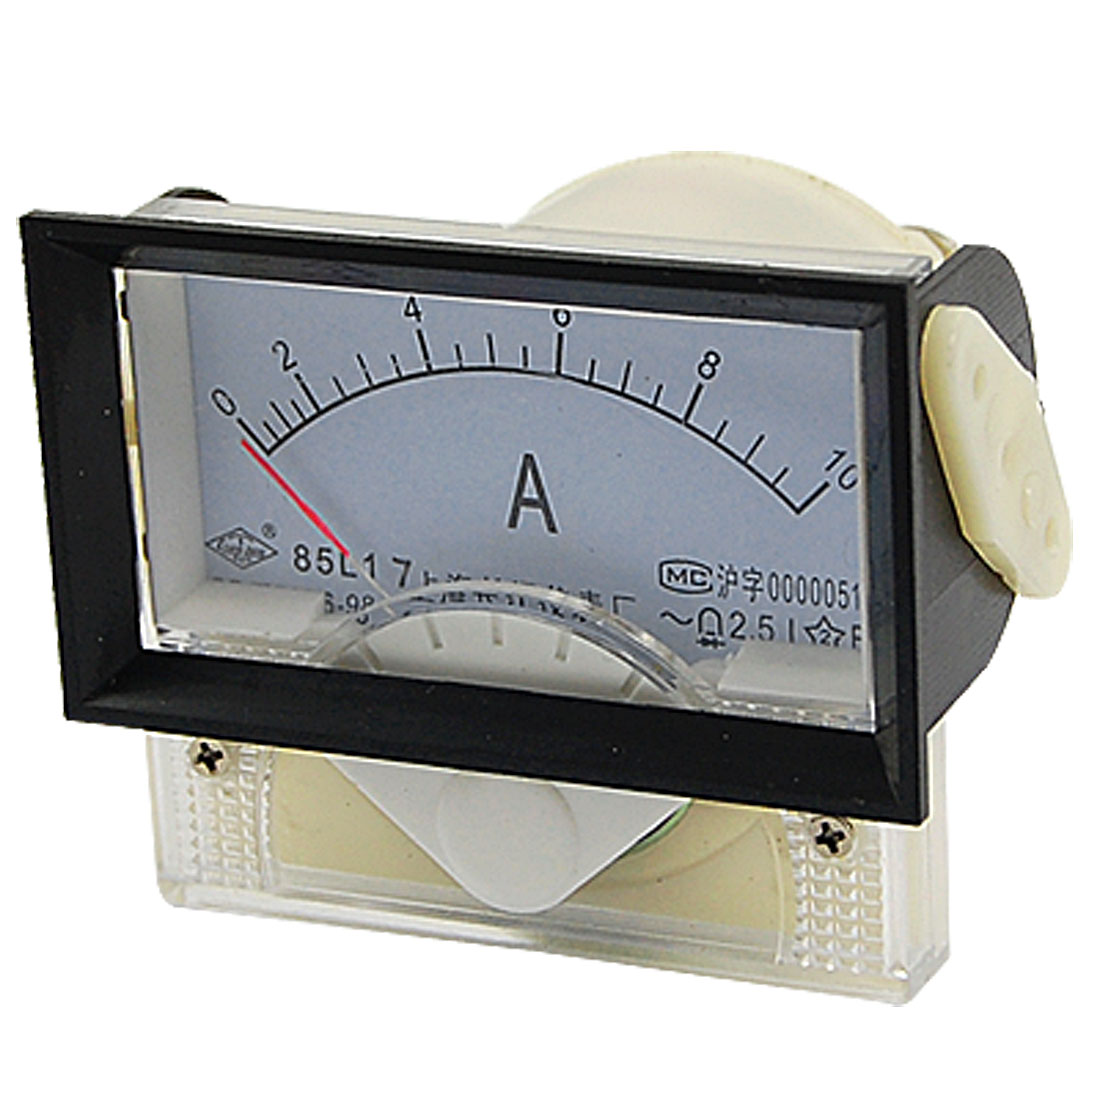 85L17 AC 0-10A Plastic Housed Analog Current Panel Meter Ammeter